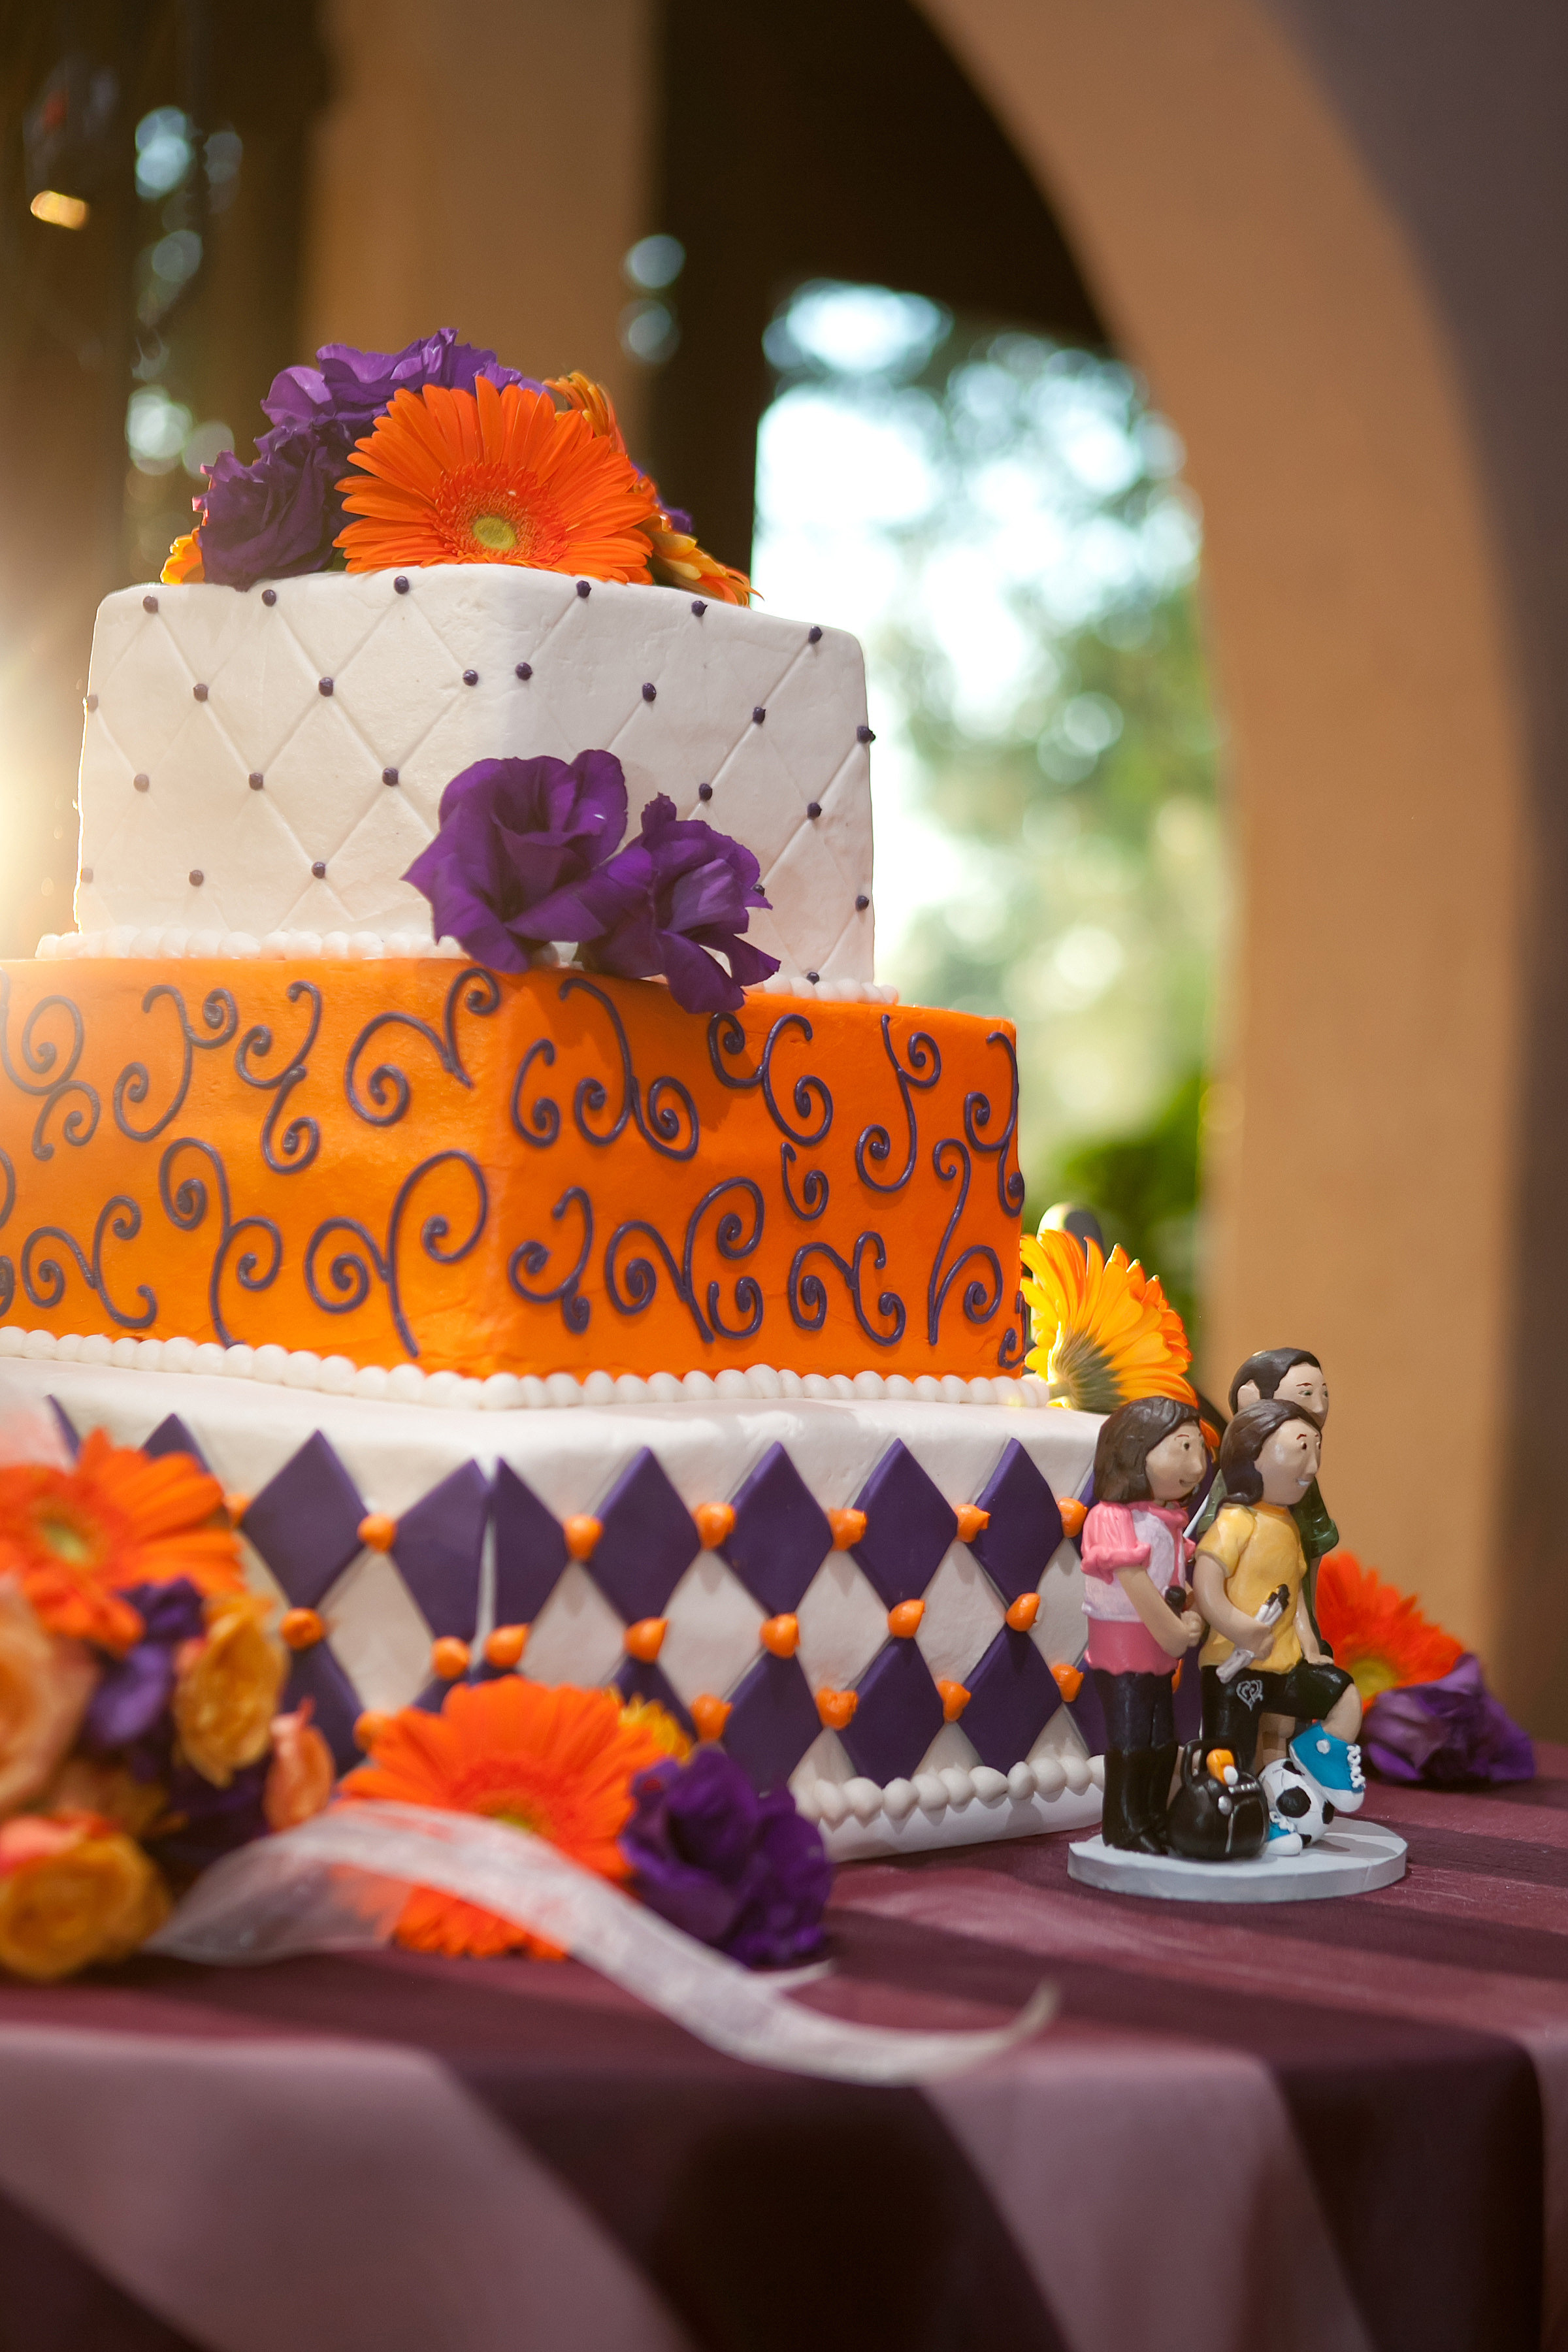 Images Of Cake With Orange And Purple